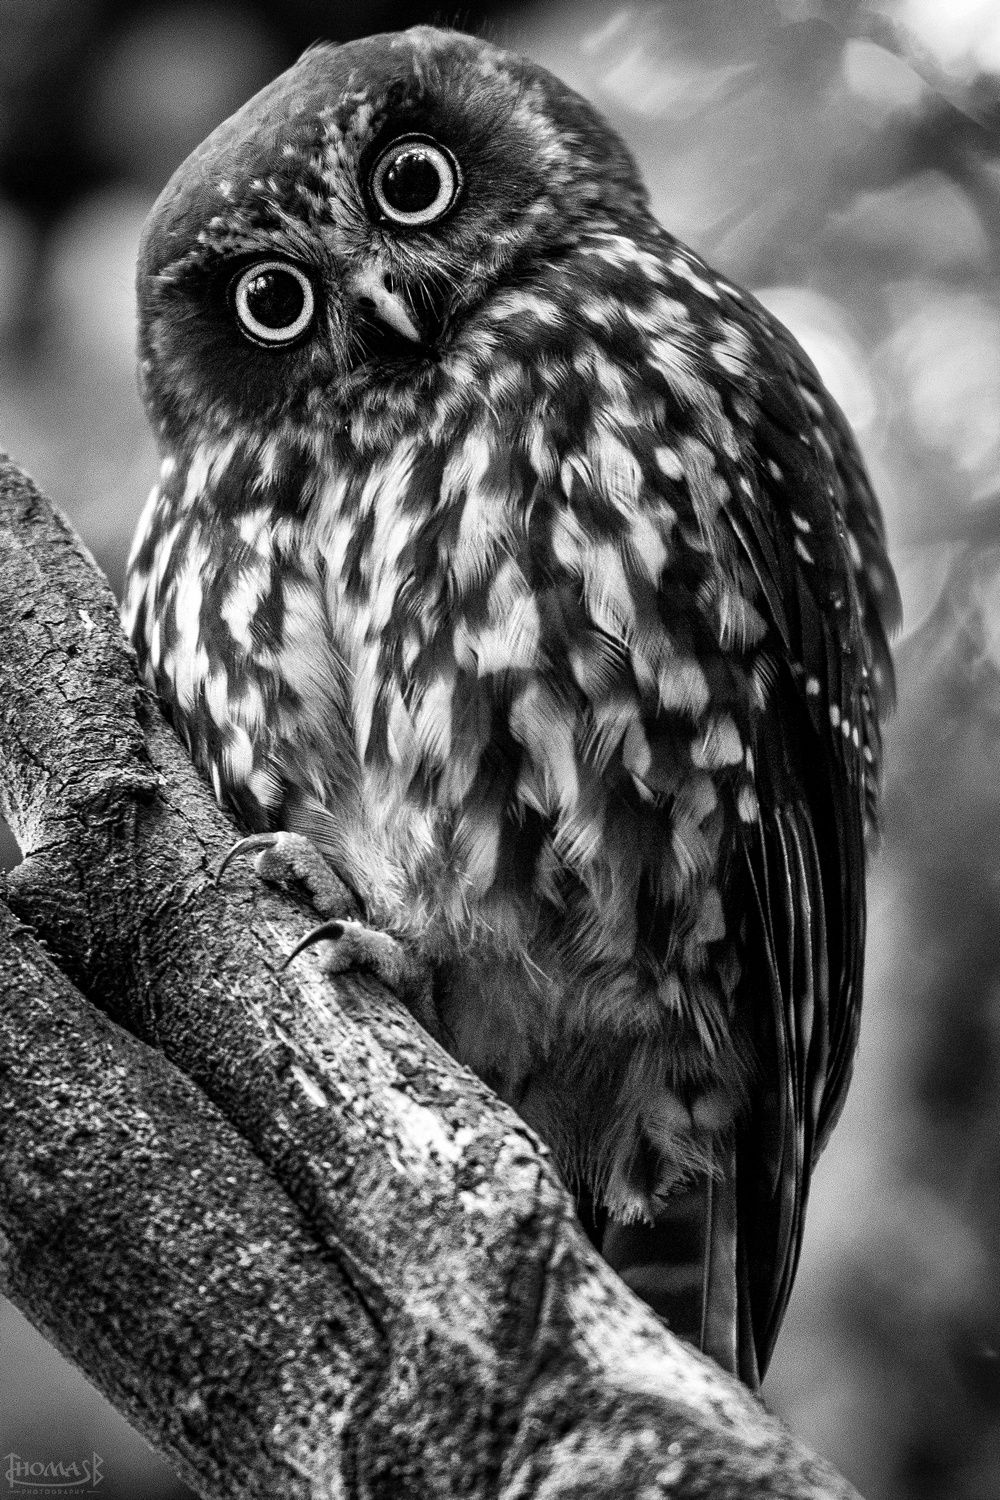 Morepork by Thomas B. on 500px